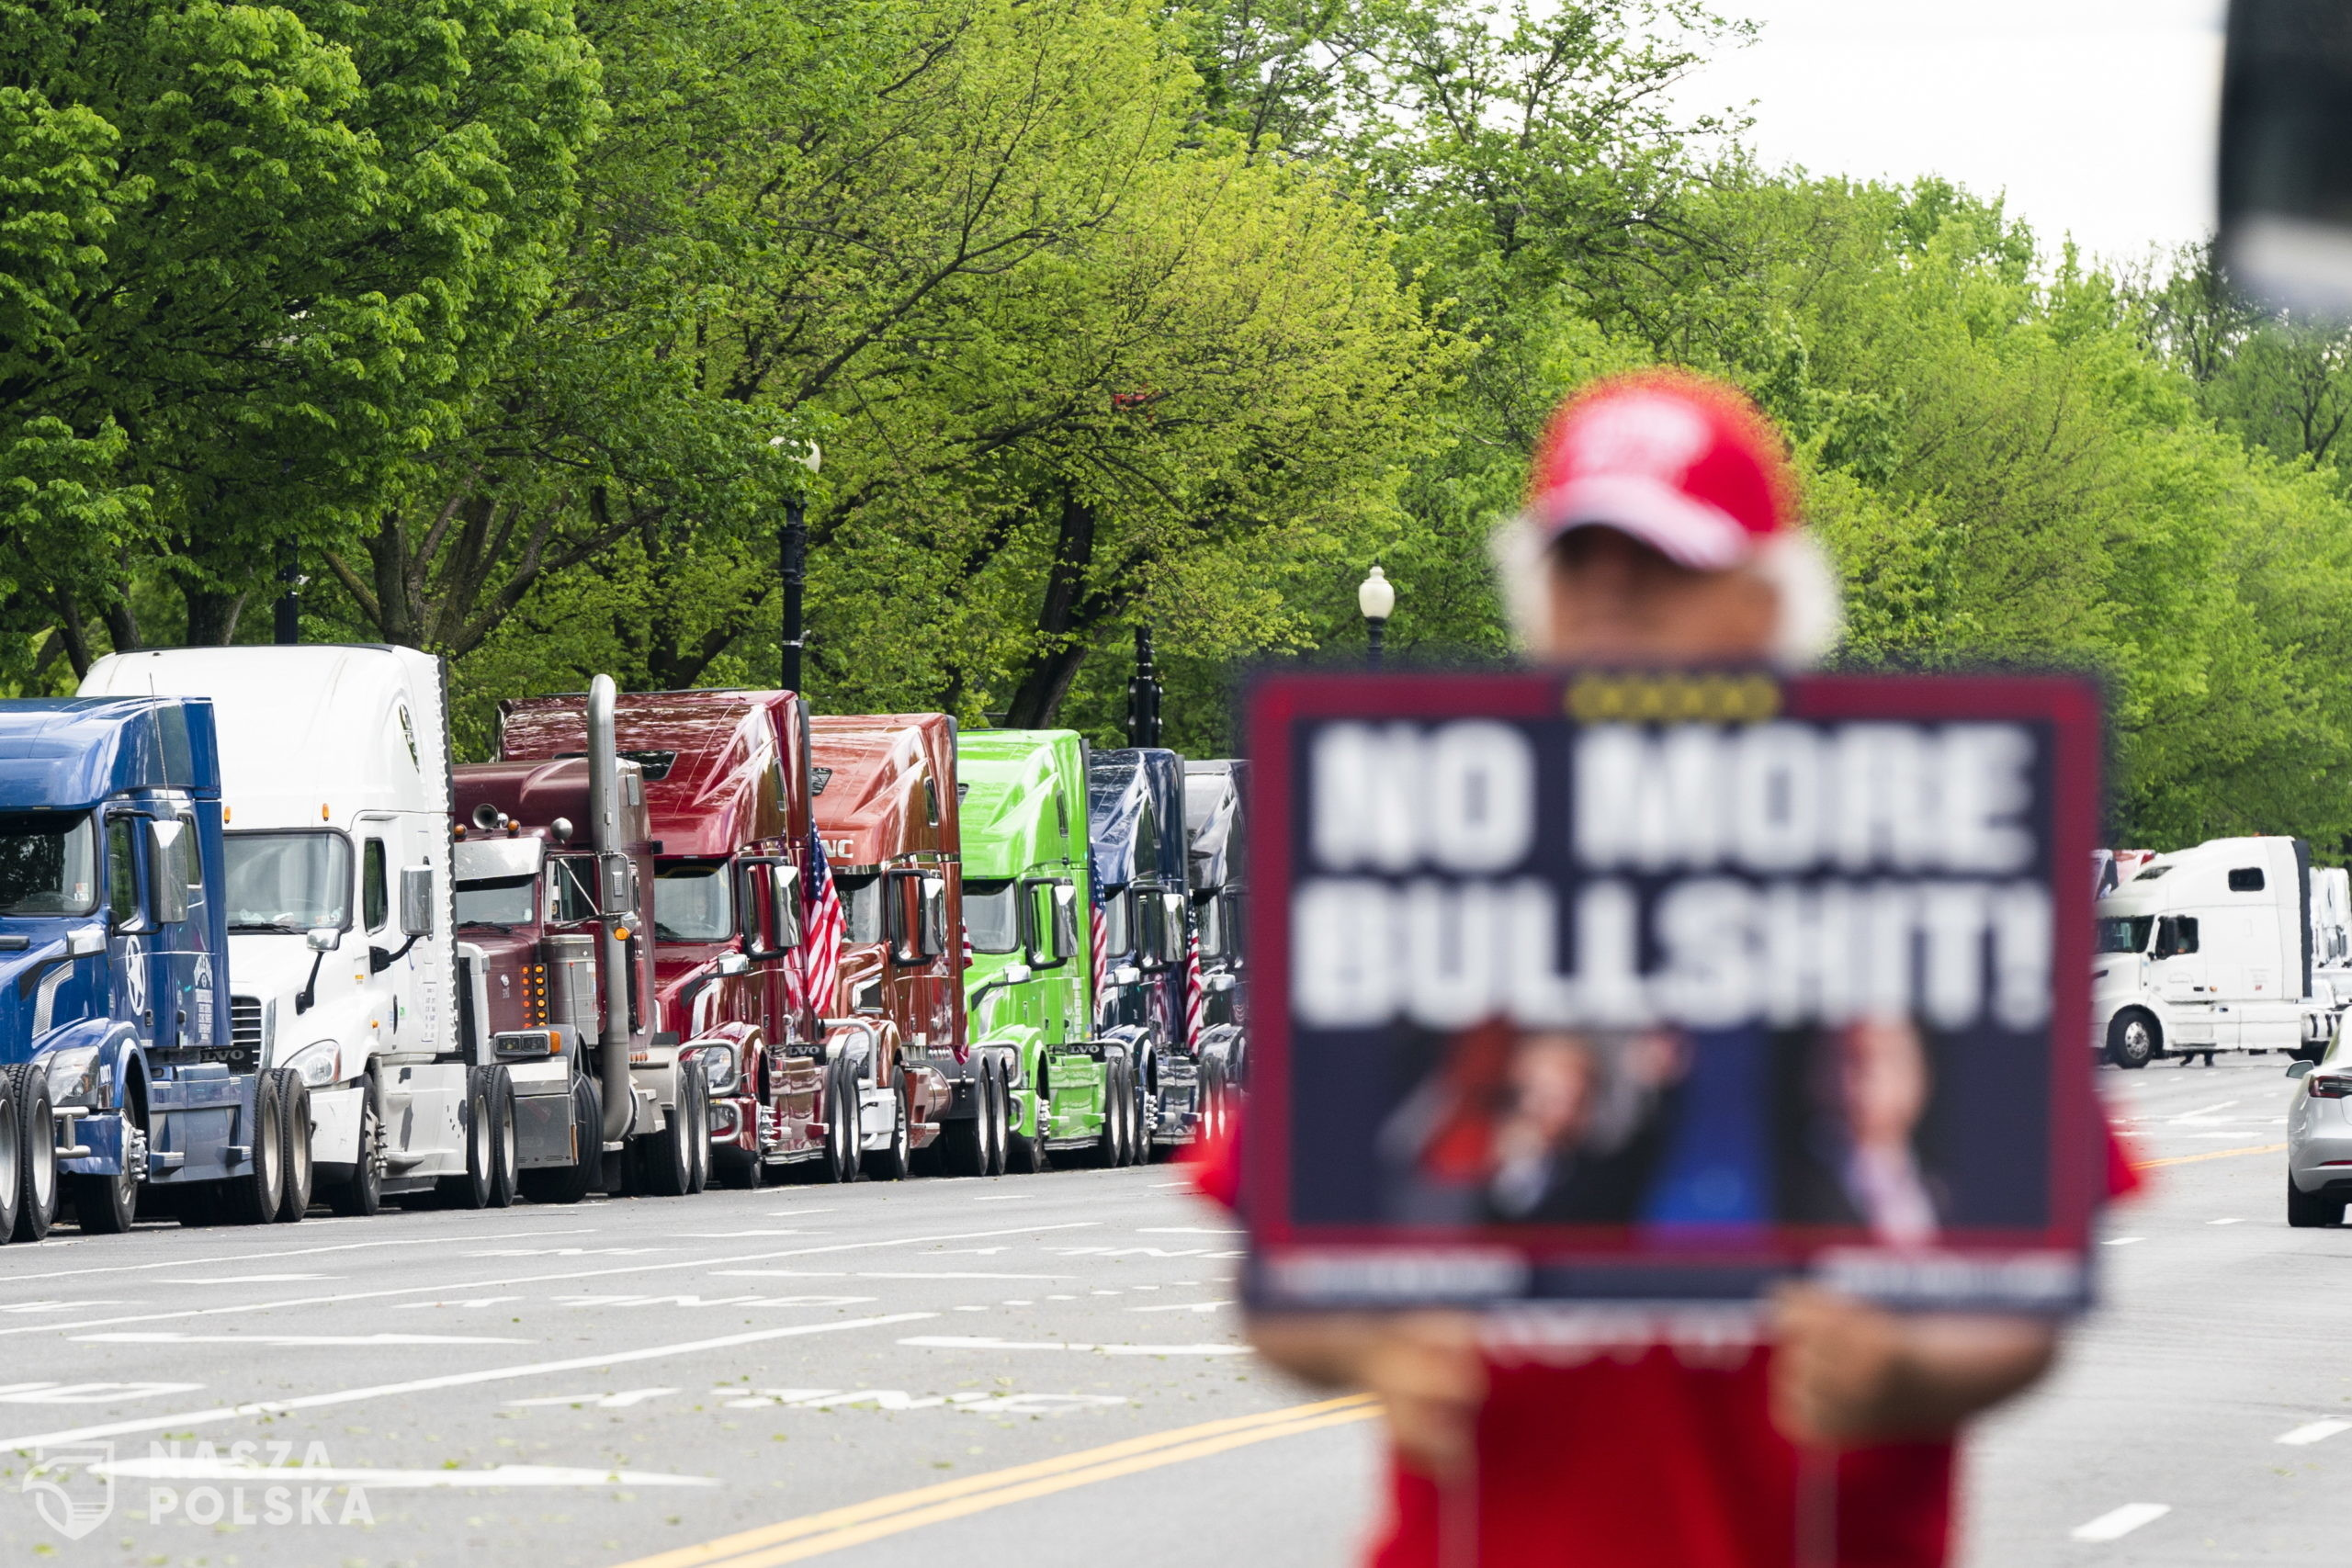 Truckers gather on Constitution Avenue for a May Day protest to highlight their complaints that brokers are taking advantage of the coronavirus COVID-19 pandemic to cut trucker pay in Washington, DC USA, 01 May 2020. They also protested lack of access to gloves and face masks during the pandemic.  (EPA/JIM LO SCALZO)